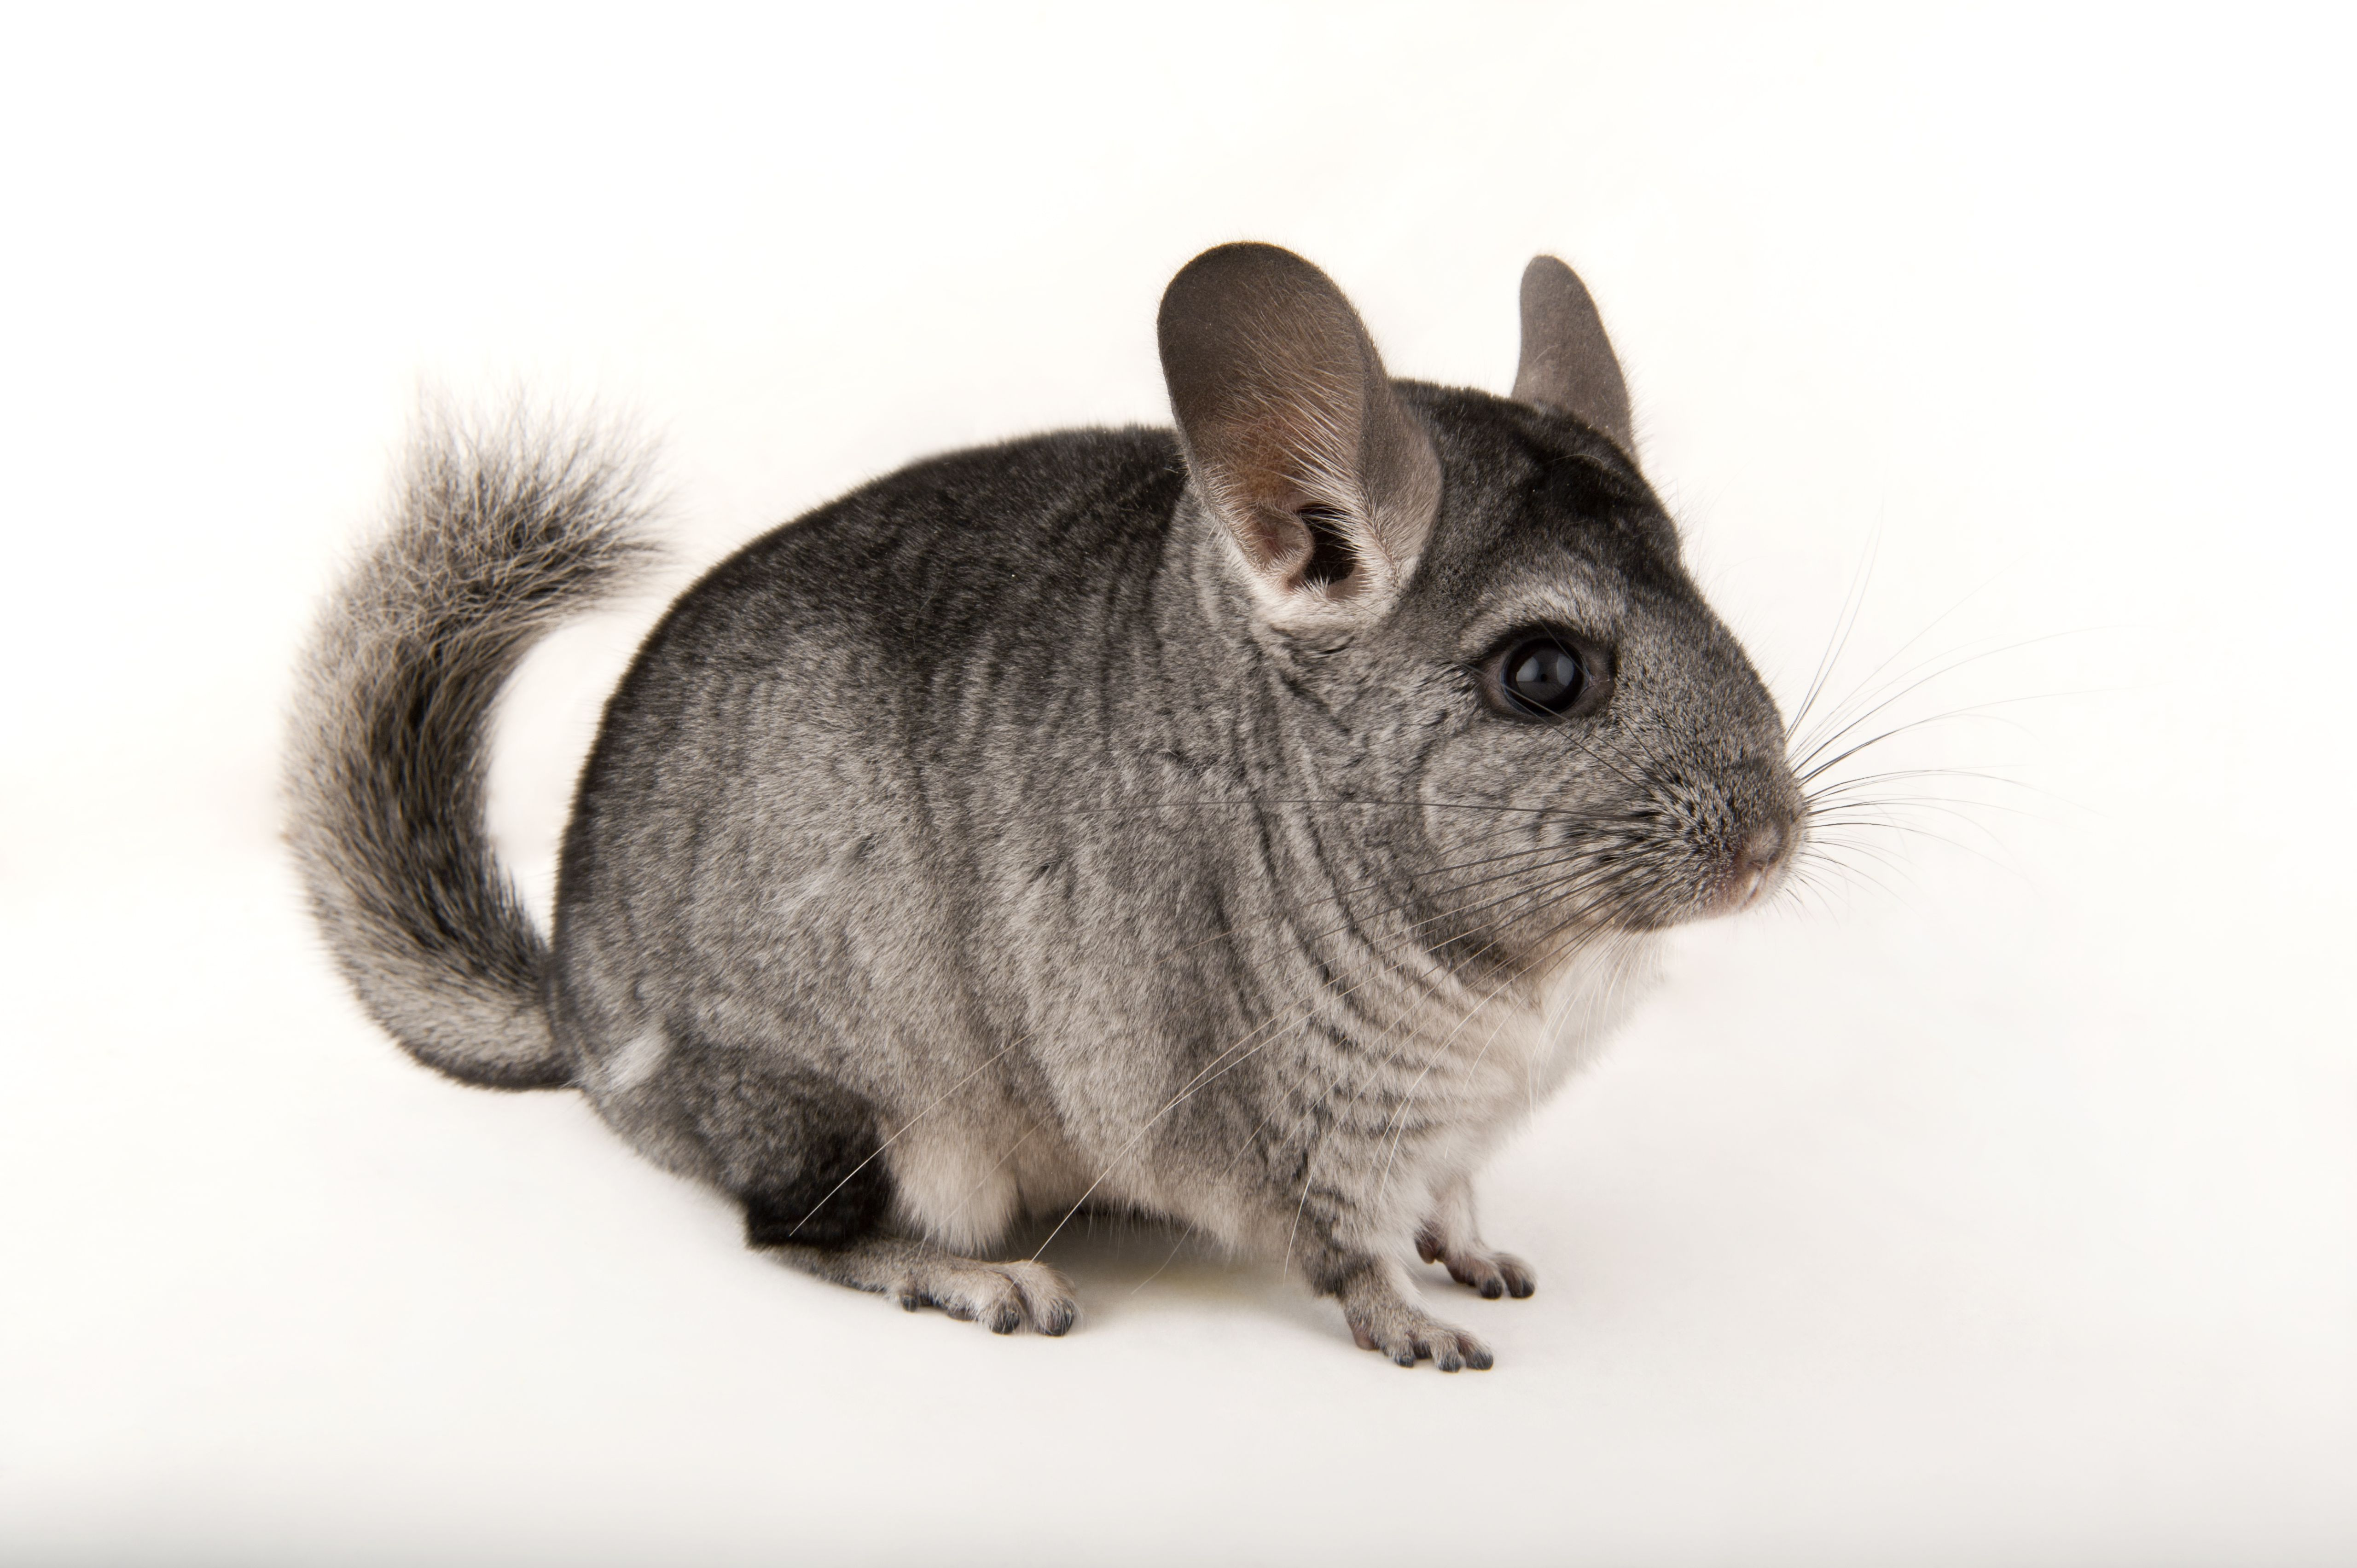 Photo Ark: Long-Tailed Chinchilla | National Geographic Society